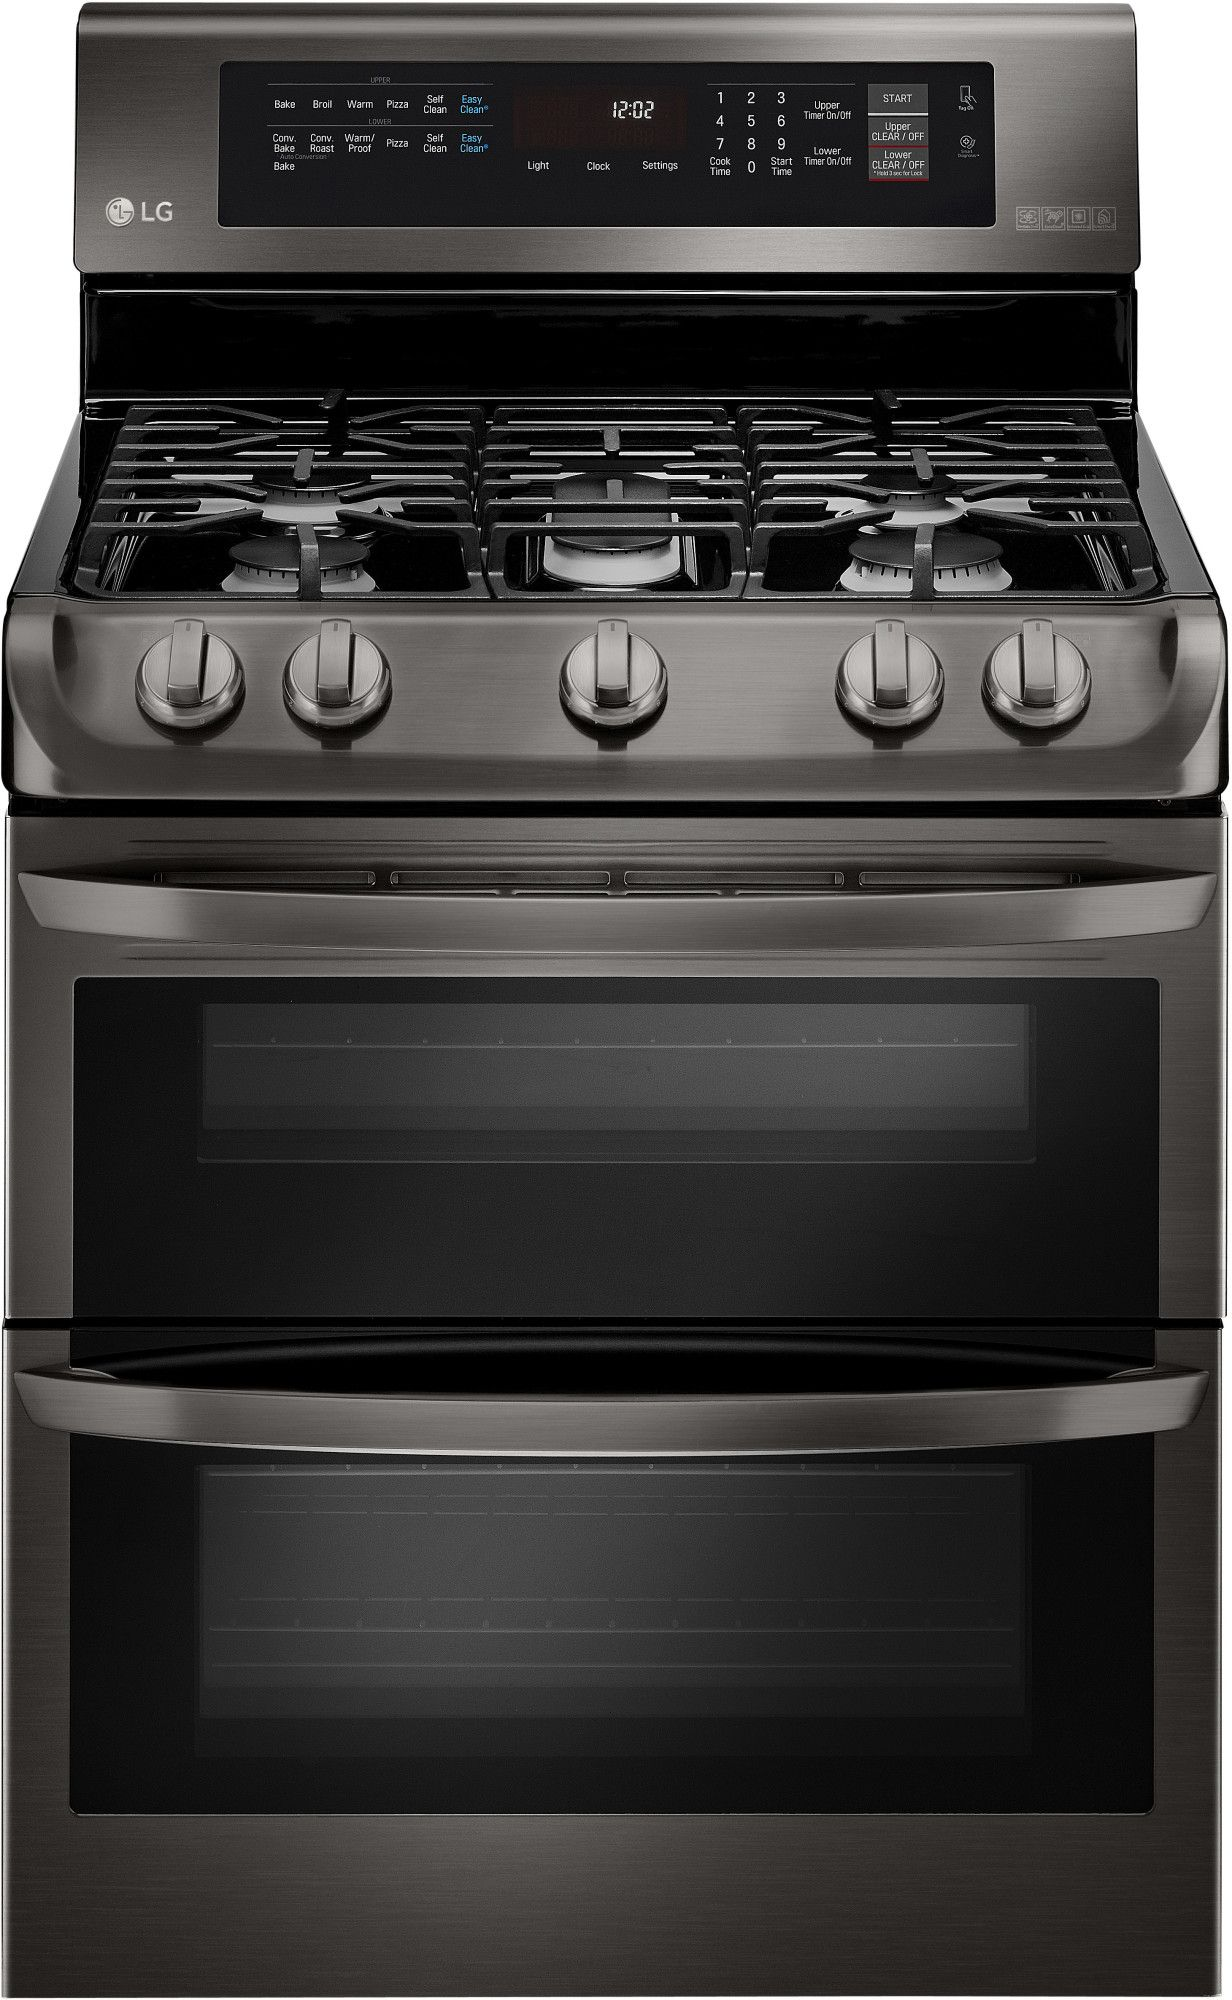 LG LDG4315BD 30 Inch Freestanding Double Oven Gas Range with 5